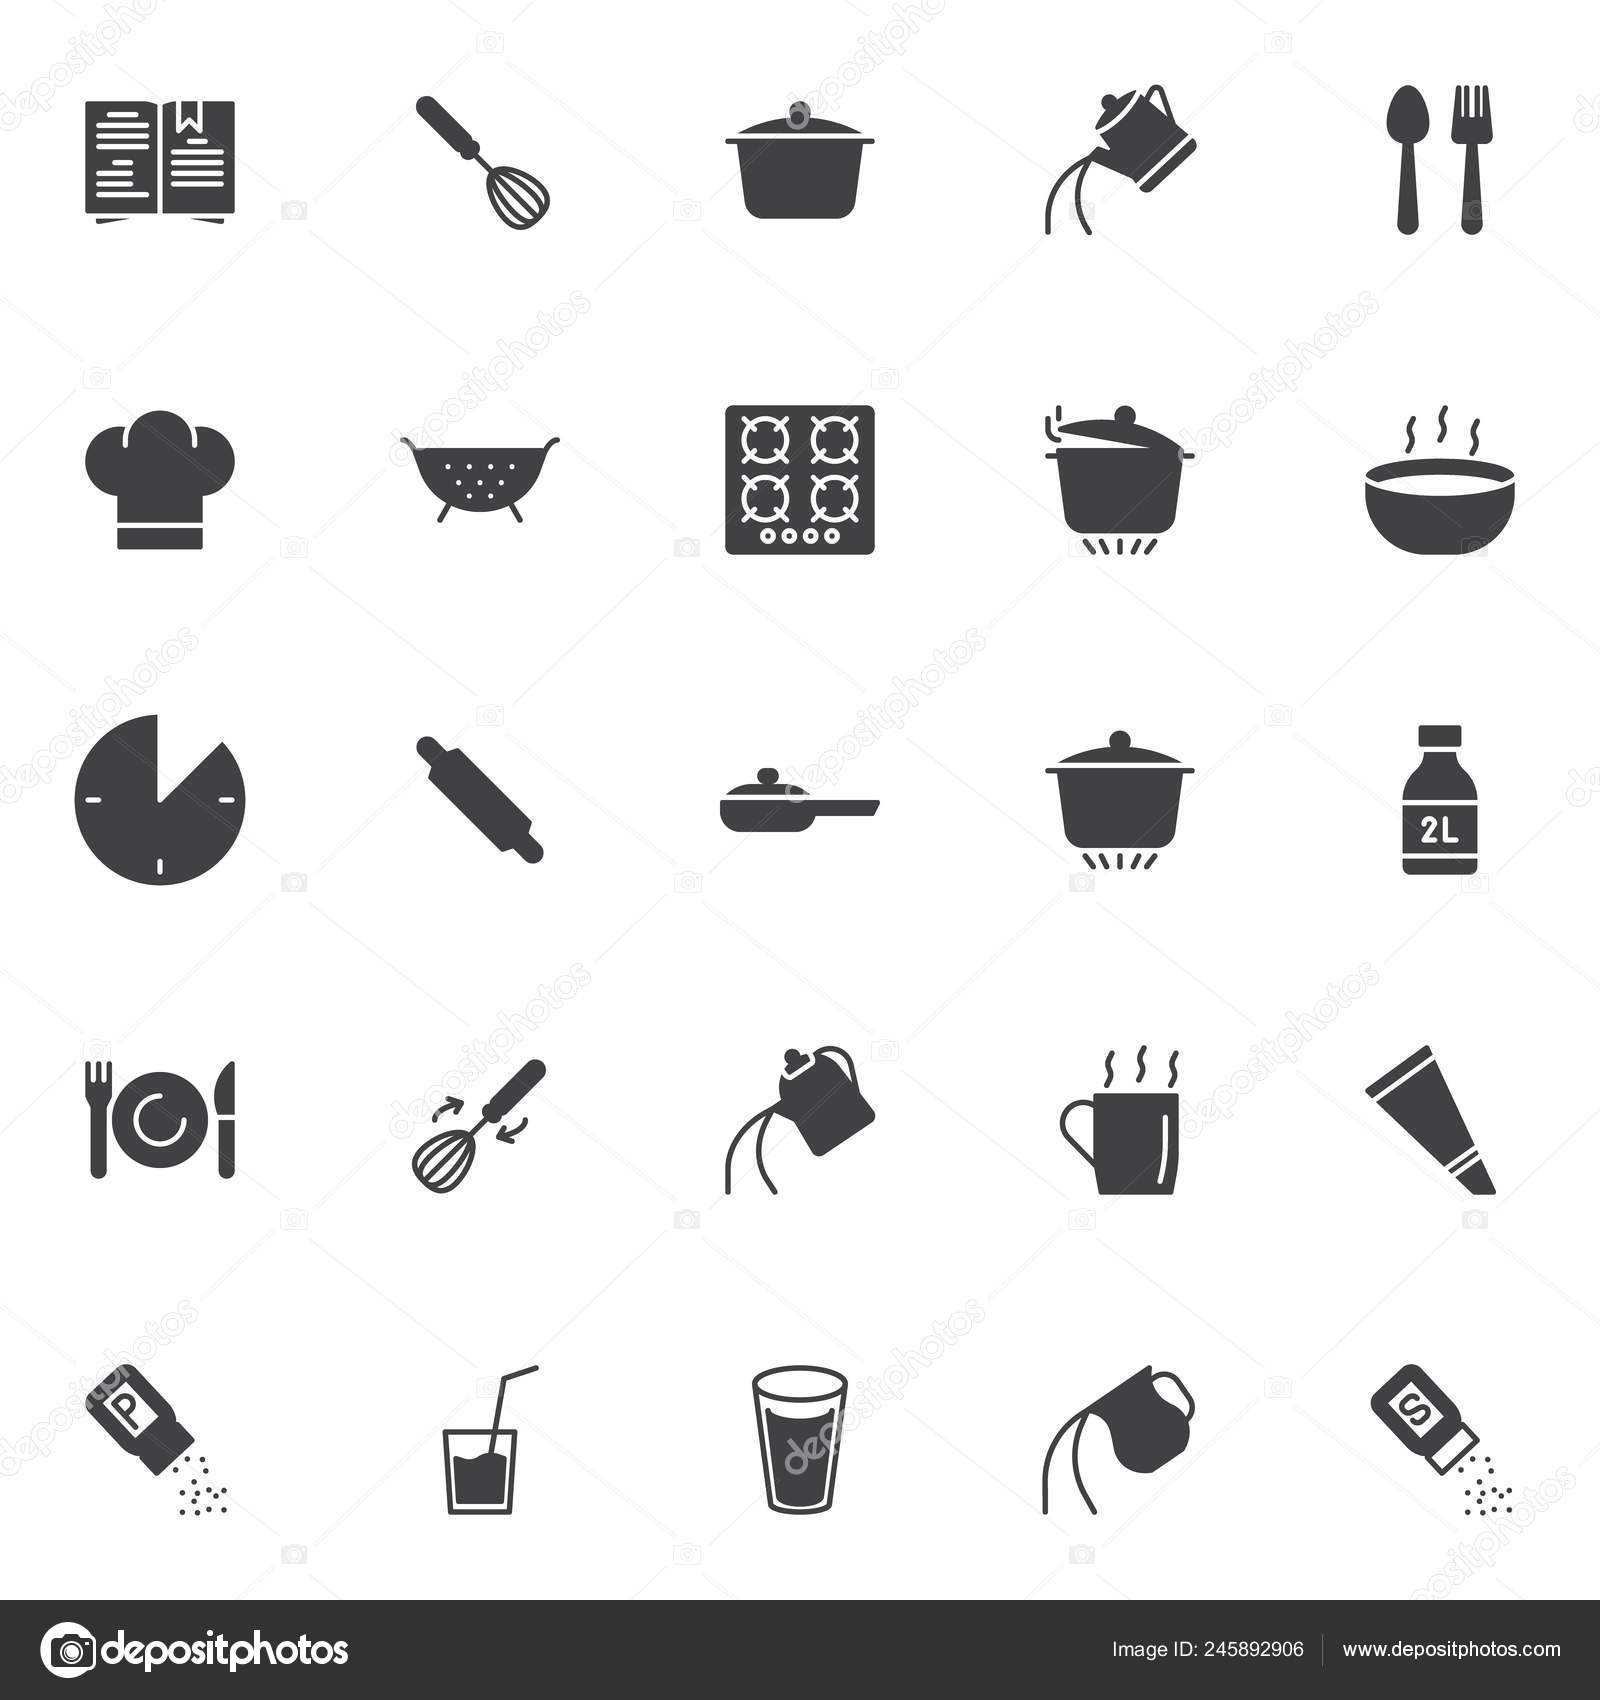 Cooking Instructions Vector Icons Set Modern Solid Symbol